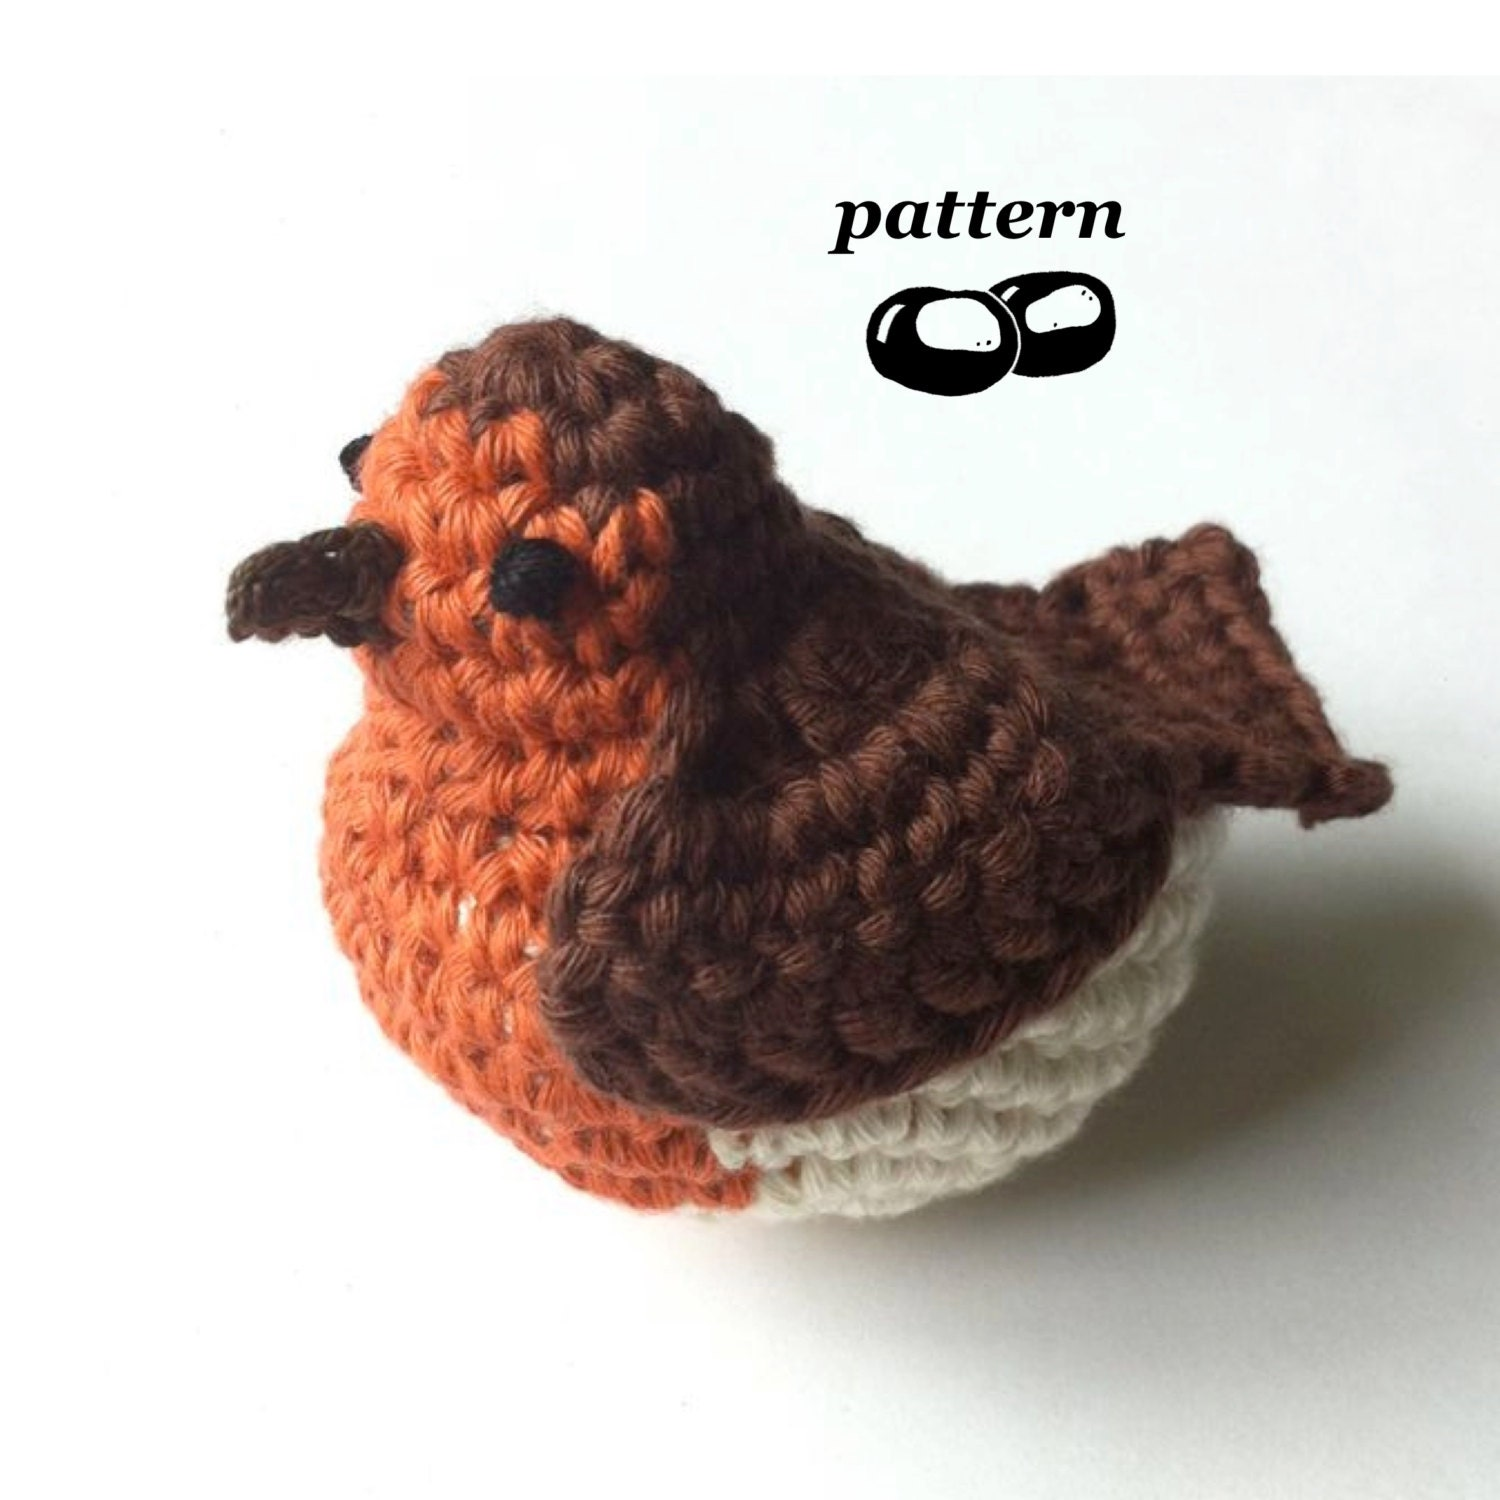 Amigurumi Crochet Patterns Free Doll : Robin Crochet Pattern / Crochet Bird Pattern / Crochet ...